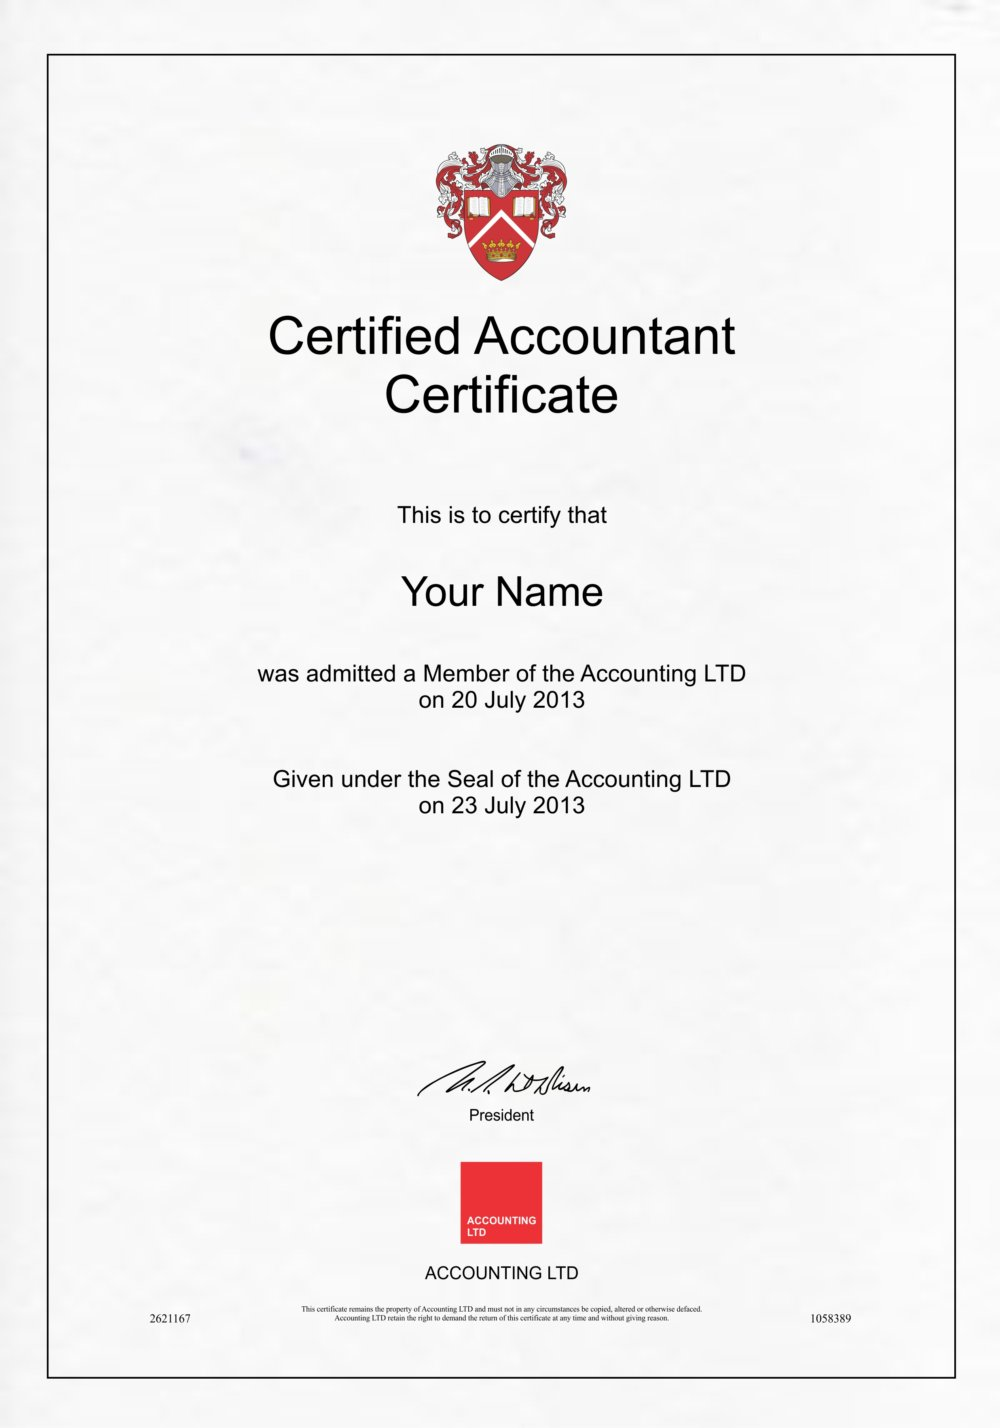 Fake Accounting Certificate 1 Diploma Outlet